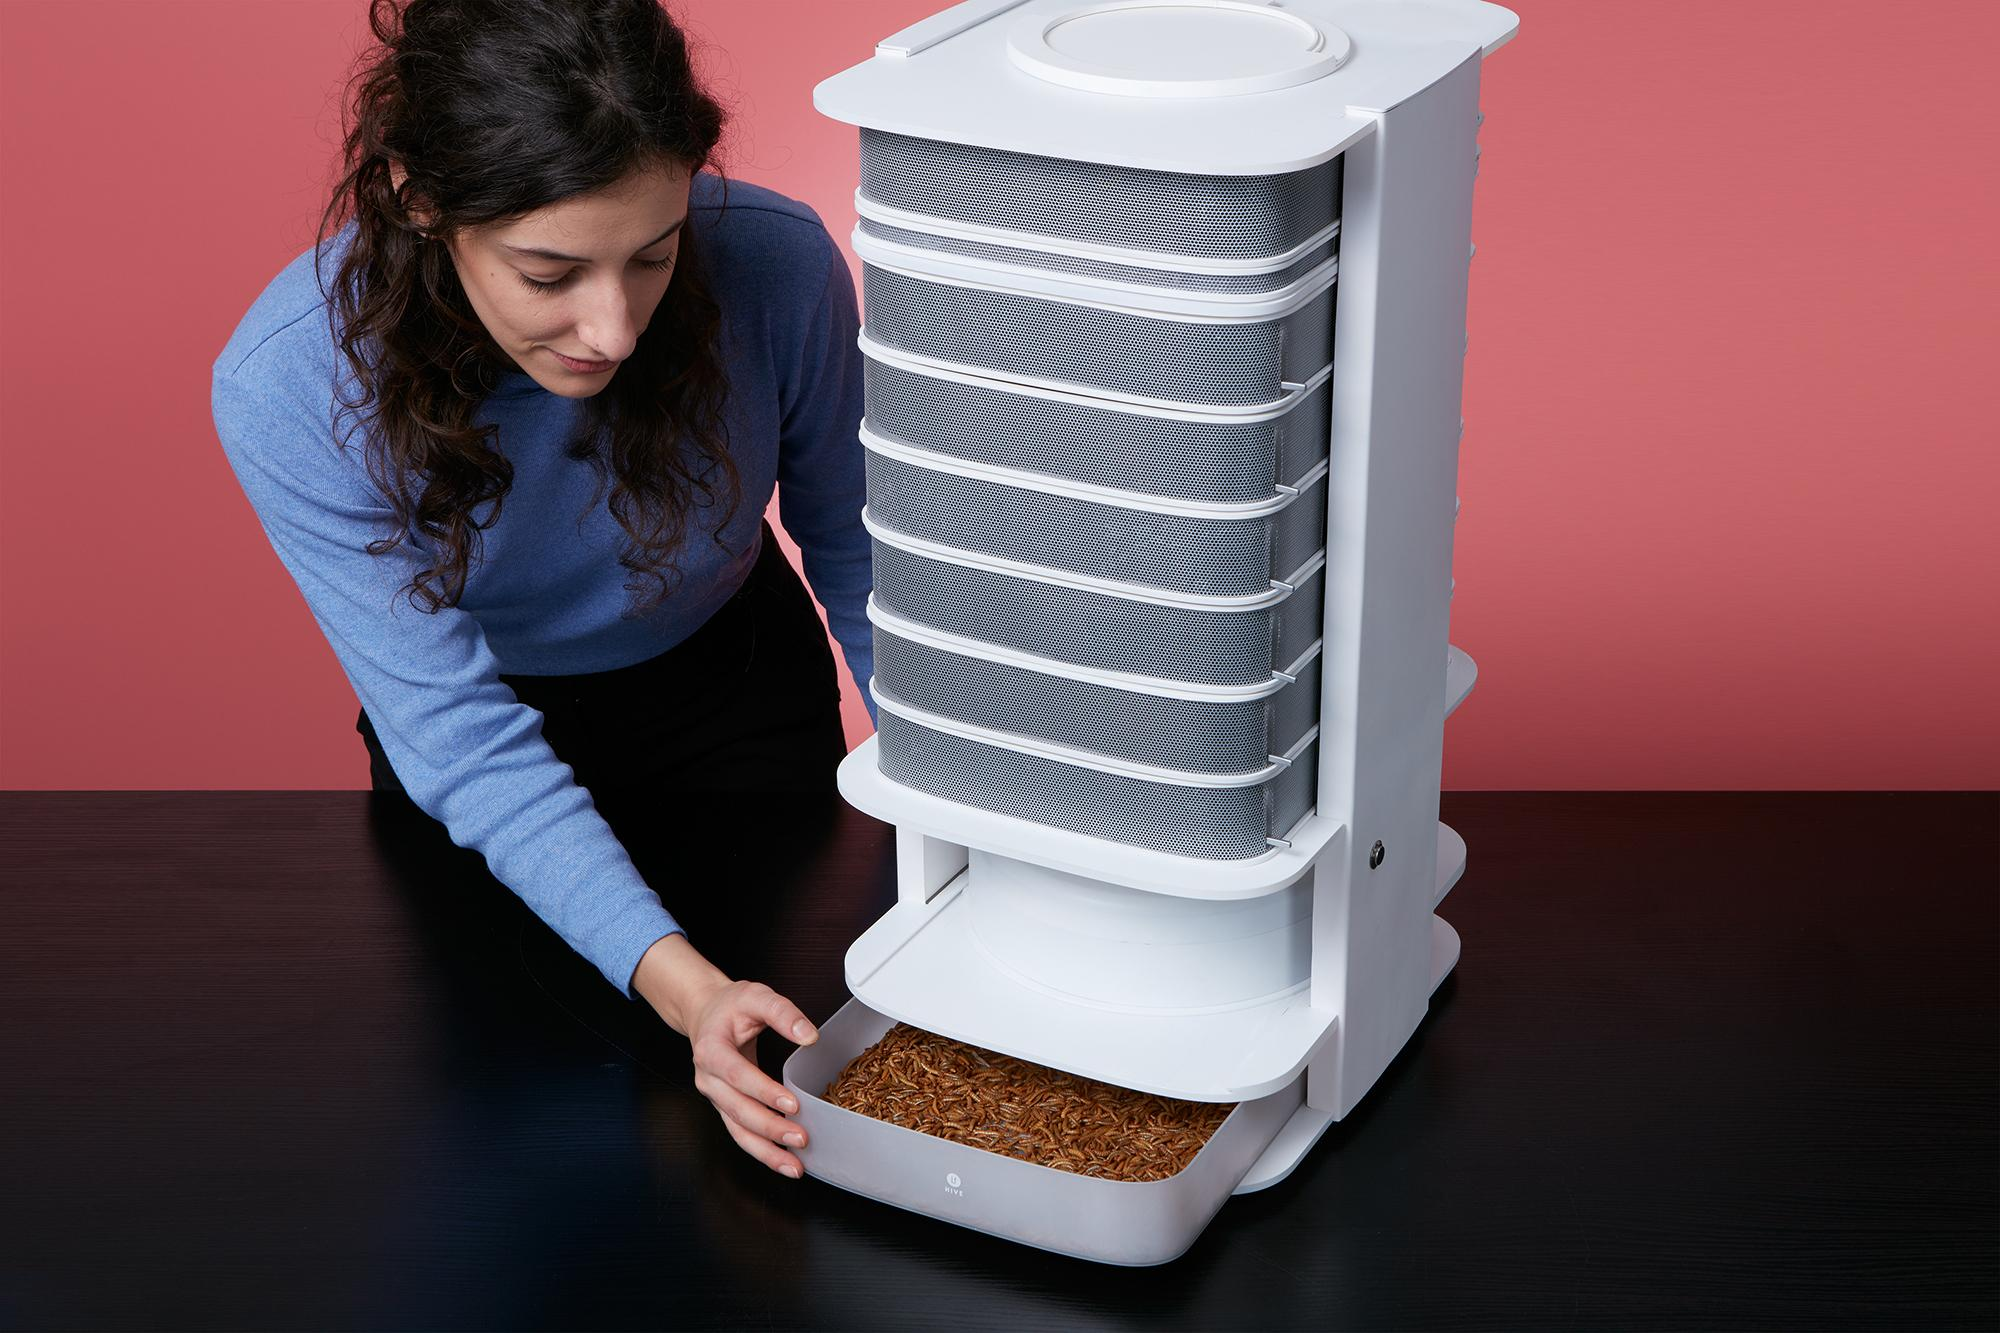 The world´s first desktop Hive to grow edible insects in your home and start a food revolution out of your kitchen ! (Titolo suggerito)LIVIN farms Hive